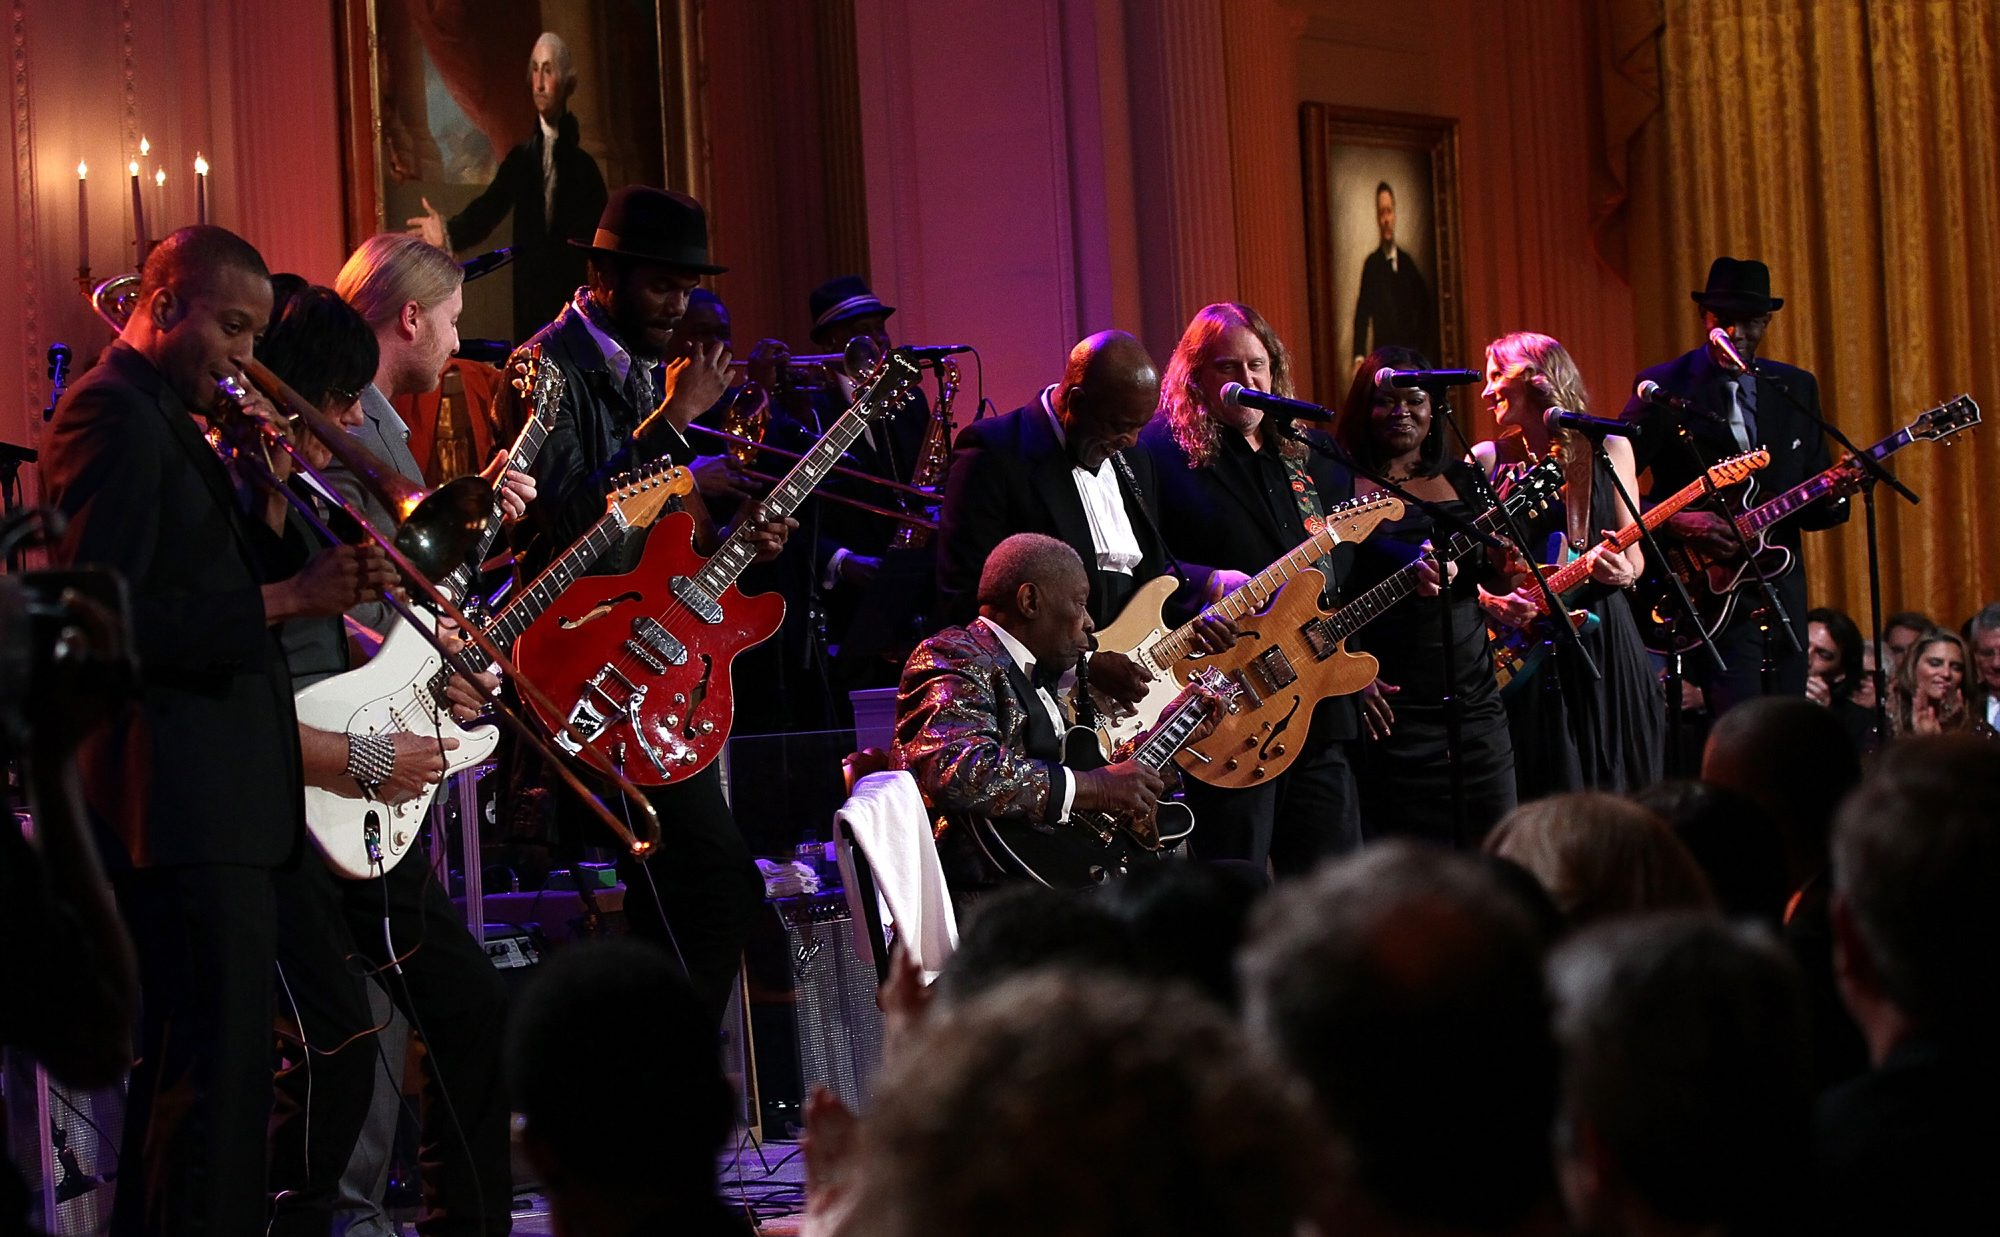 Blues legend B.B. King performed with an all-star cast at 'White House: Red, White and Blues' in 2012. (Getty Images)